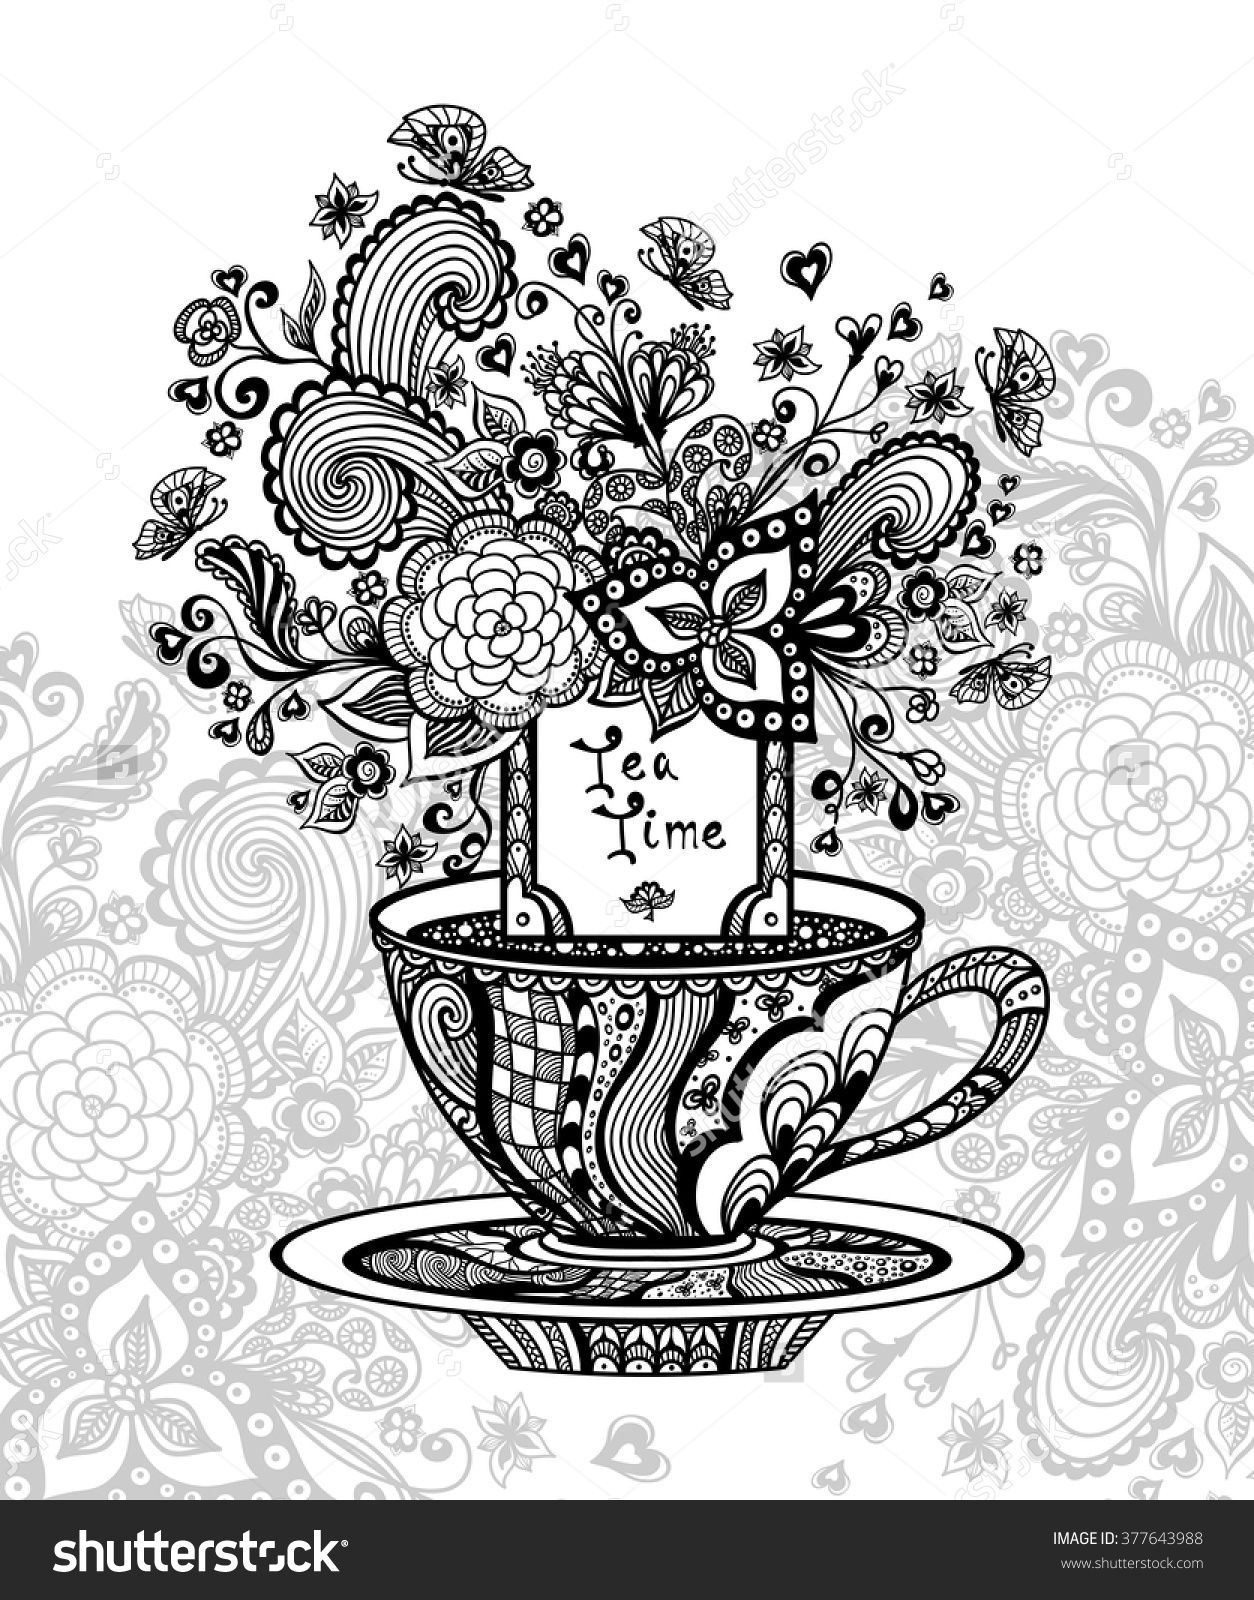 Zen Doodle Cup Of Tea With Flowers Coloring Page 377643988 Shutterstock